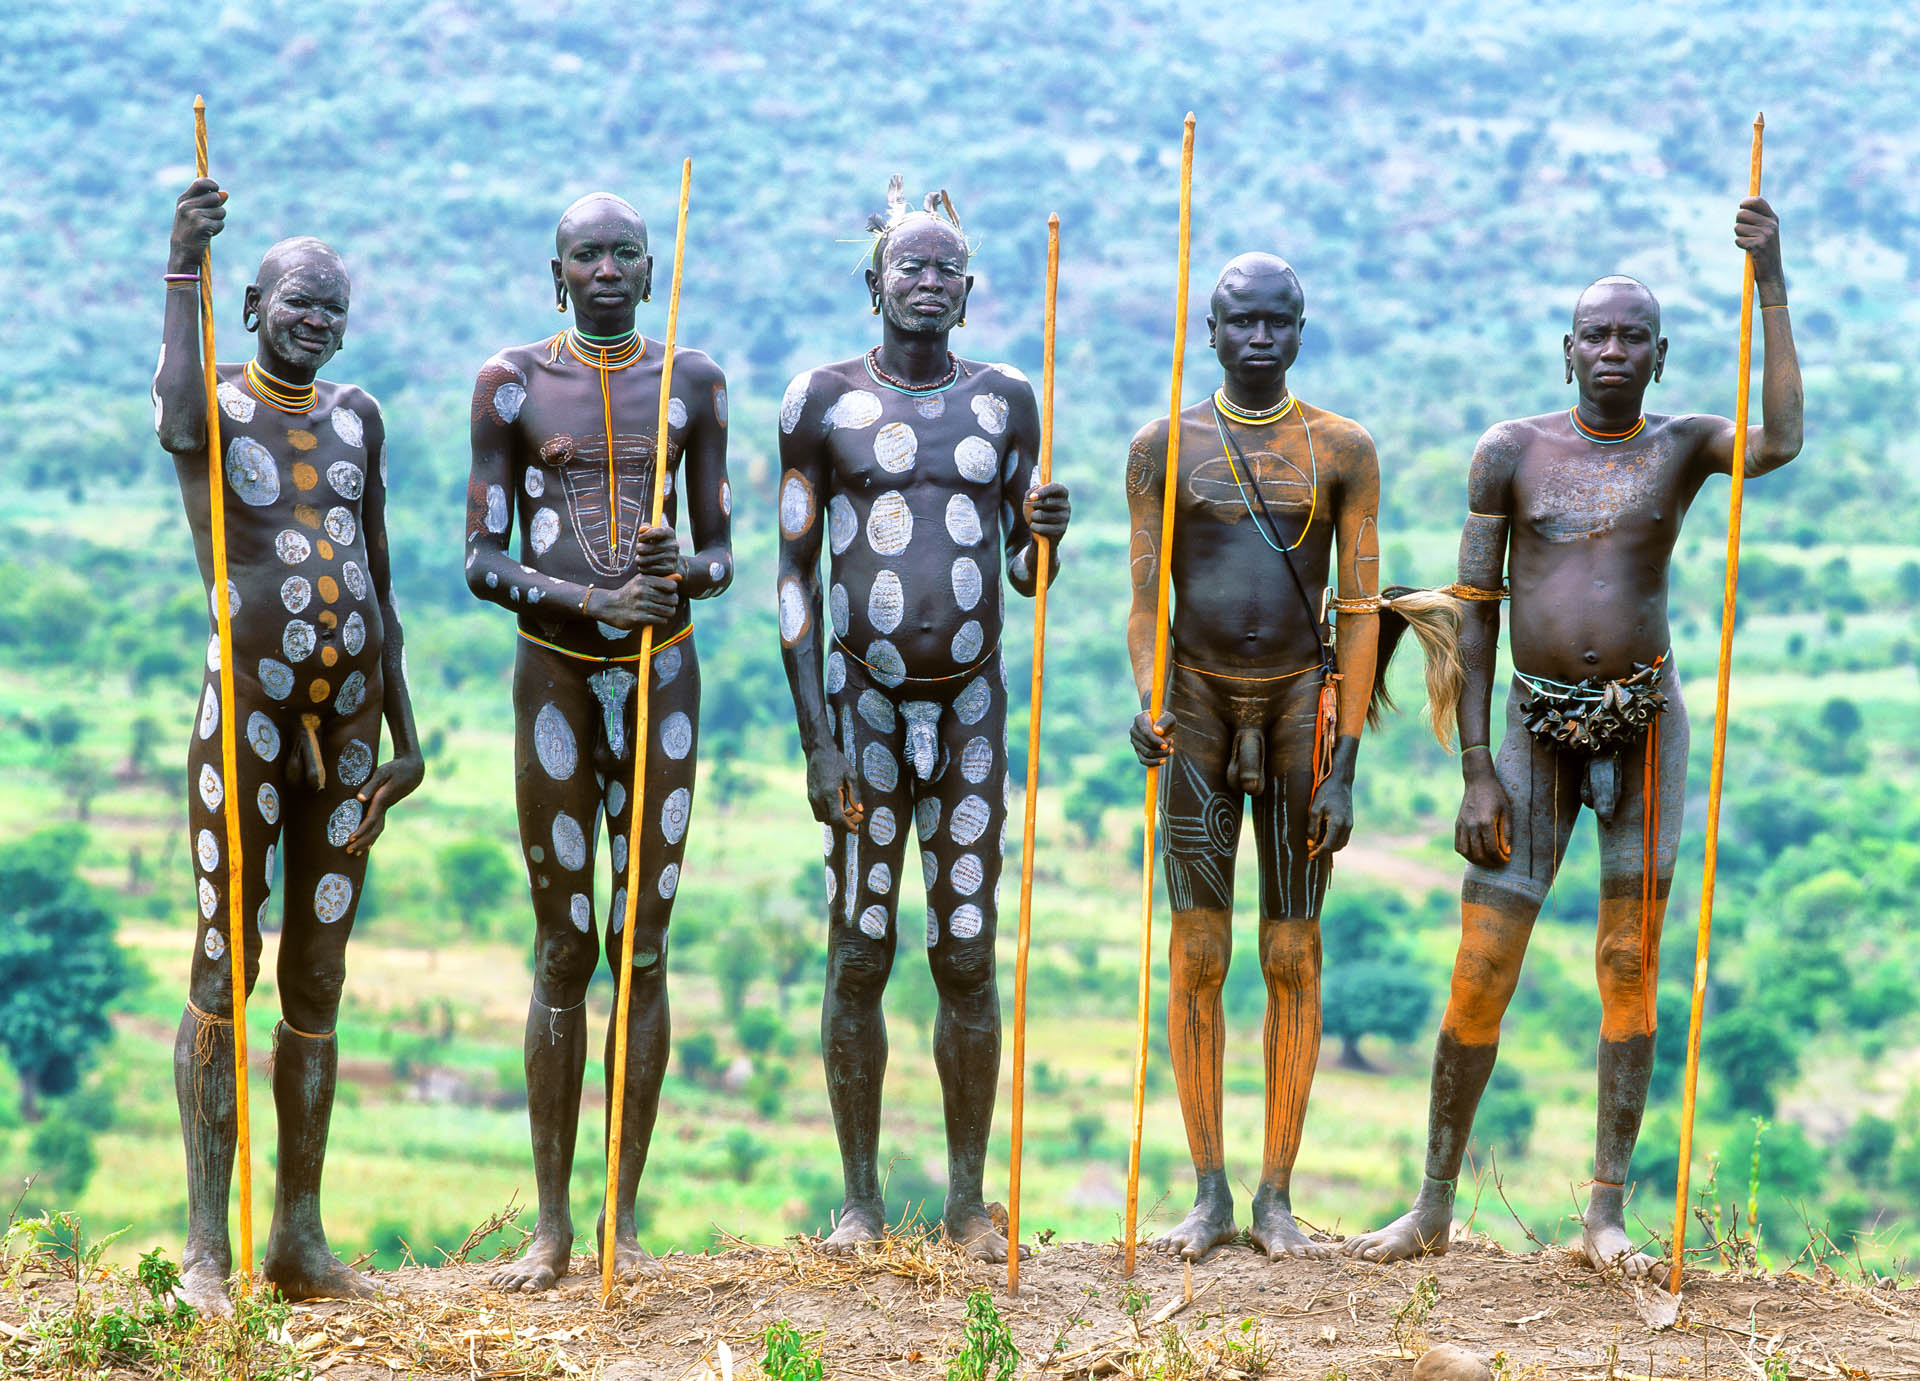 Omo Valley, Ethiopia - June 2003African Beauty: portrait of people of Surma tribe from Kormu village, in the Omo Valley.© GIANNI GIANSANTI